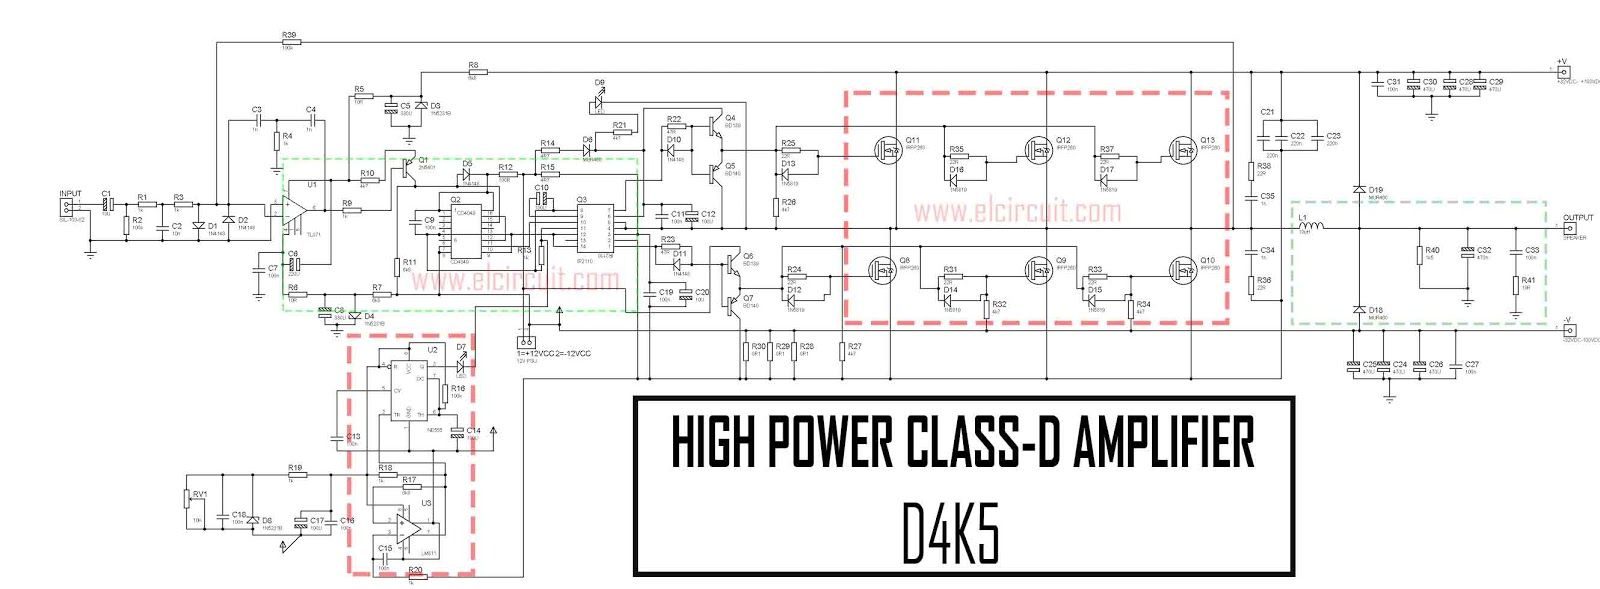 small resolution of power amplifier circuit diagram class d d4k5